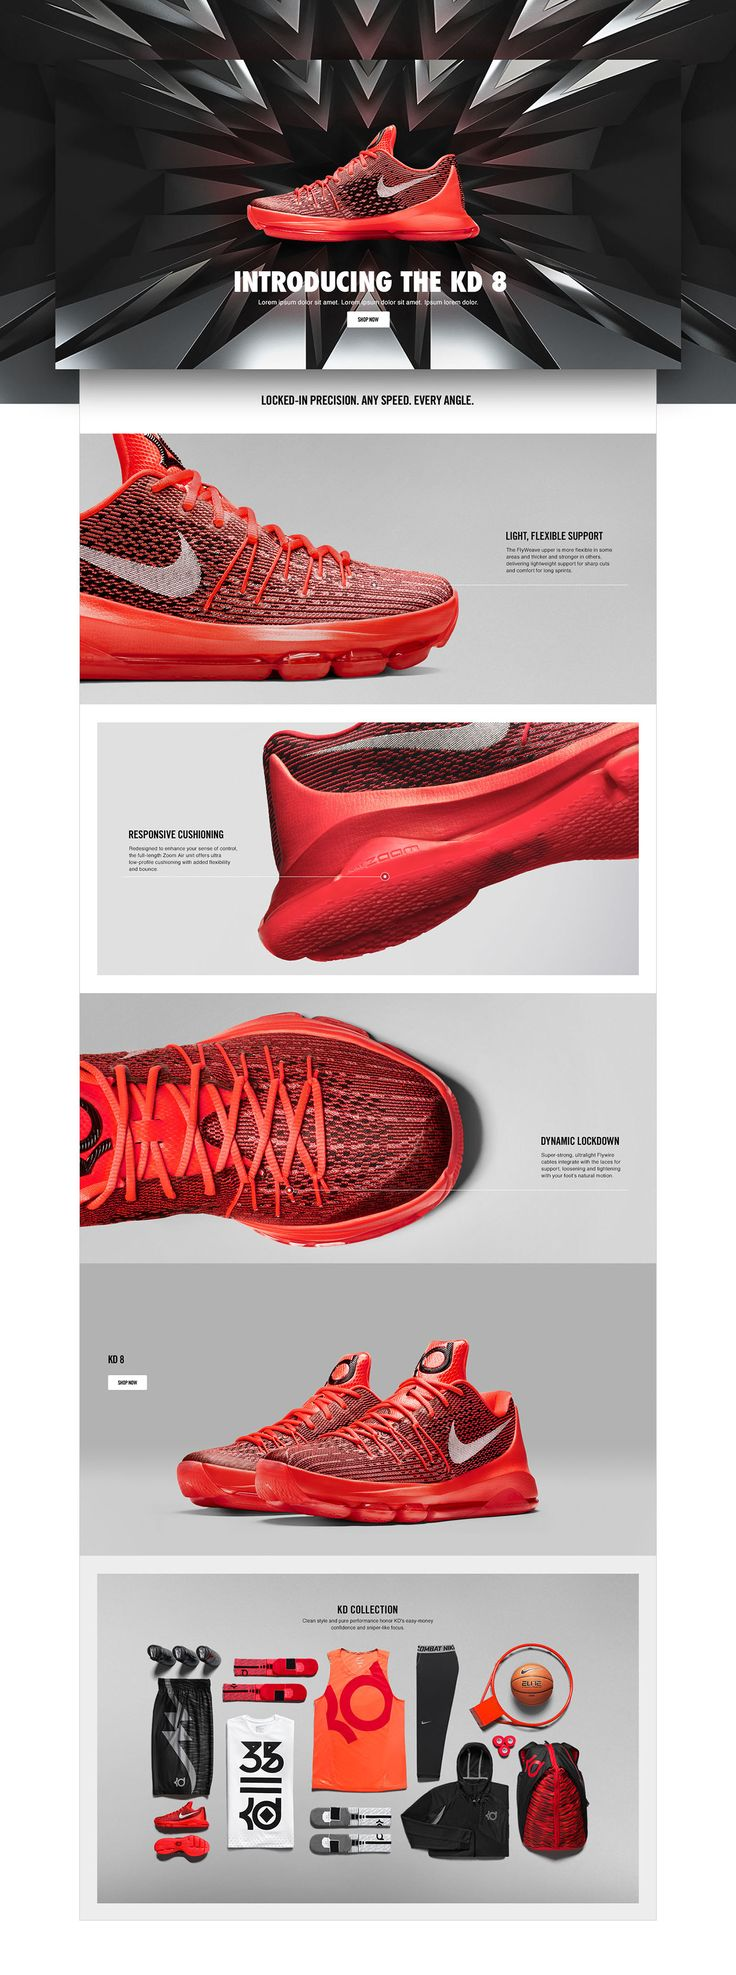 A collection of product story pages created at Nike. The collection covers Nike Basketball, Mens Training, Running categories.